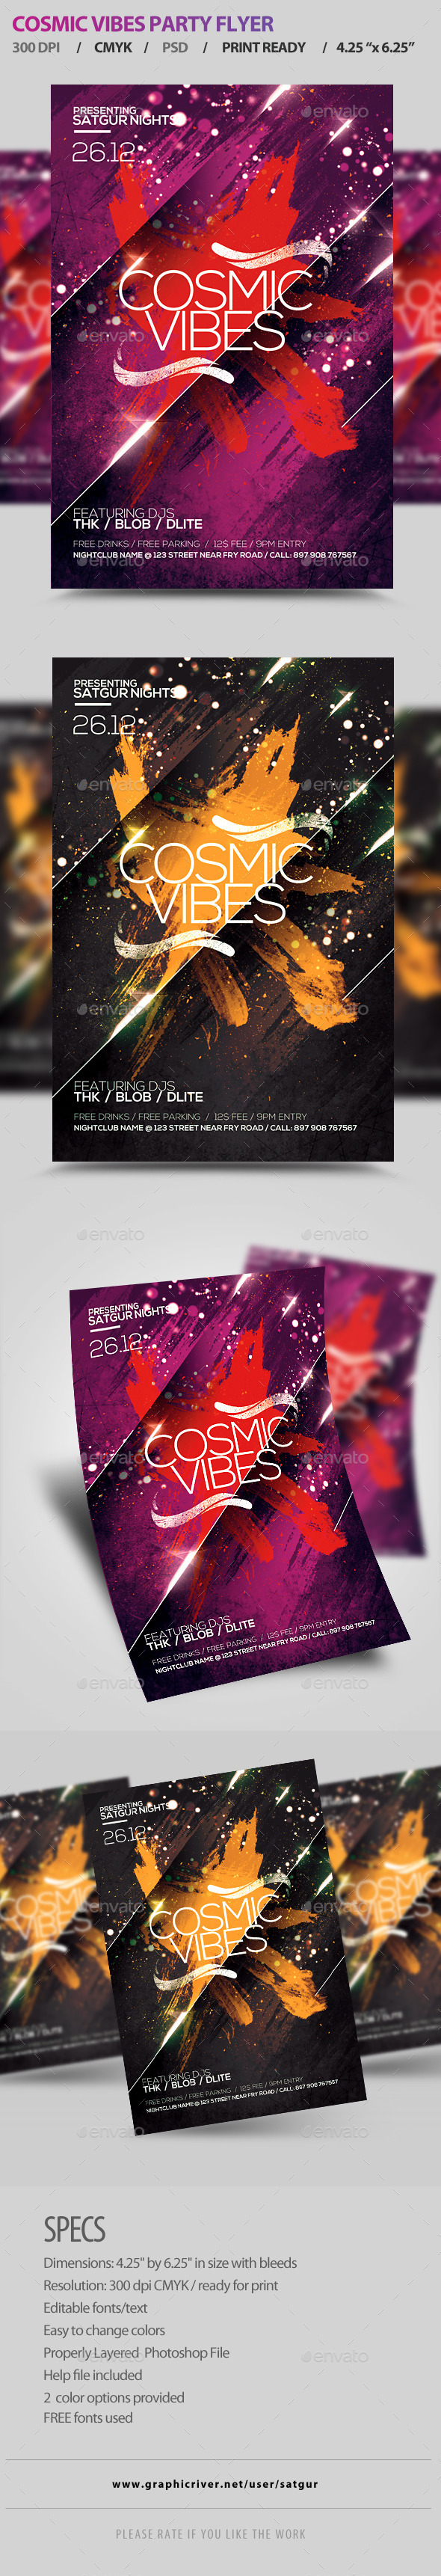 GraphicRiver Cosmic Vibes Party Flyer Template PSD 8998302